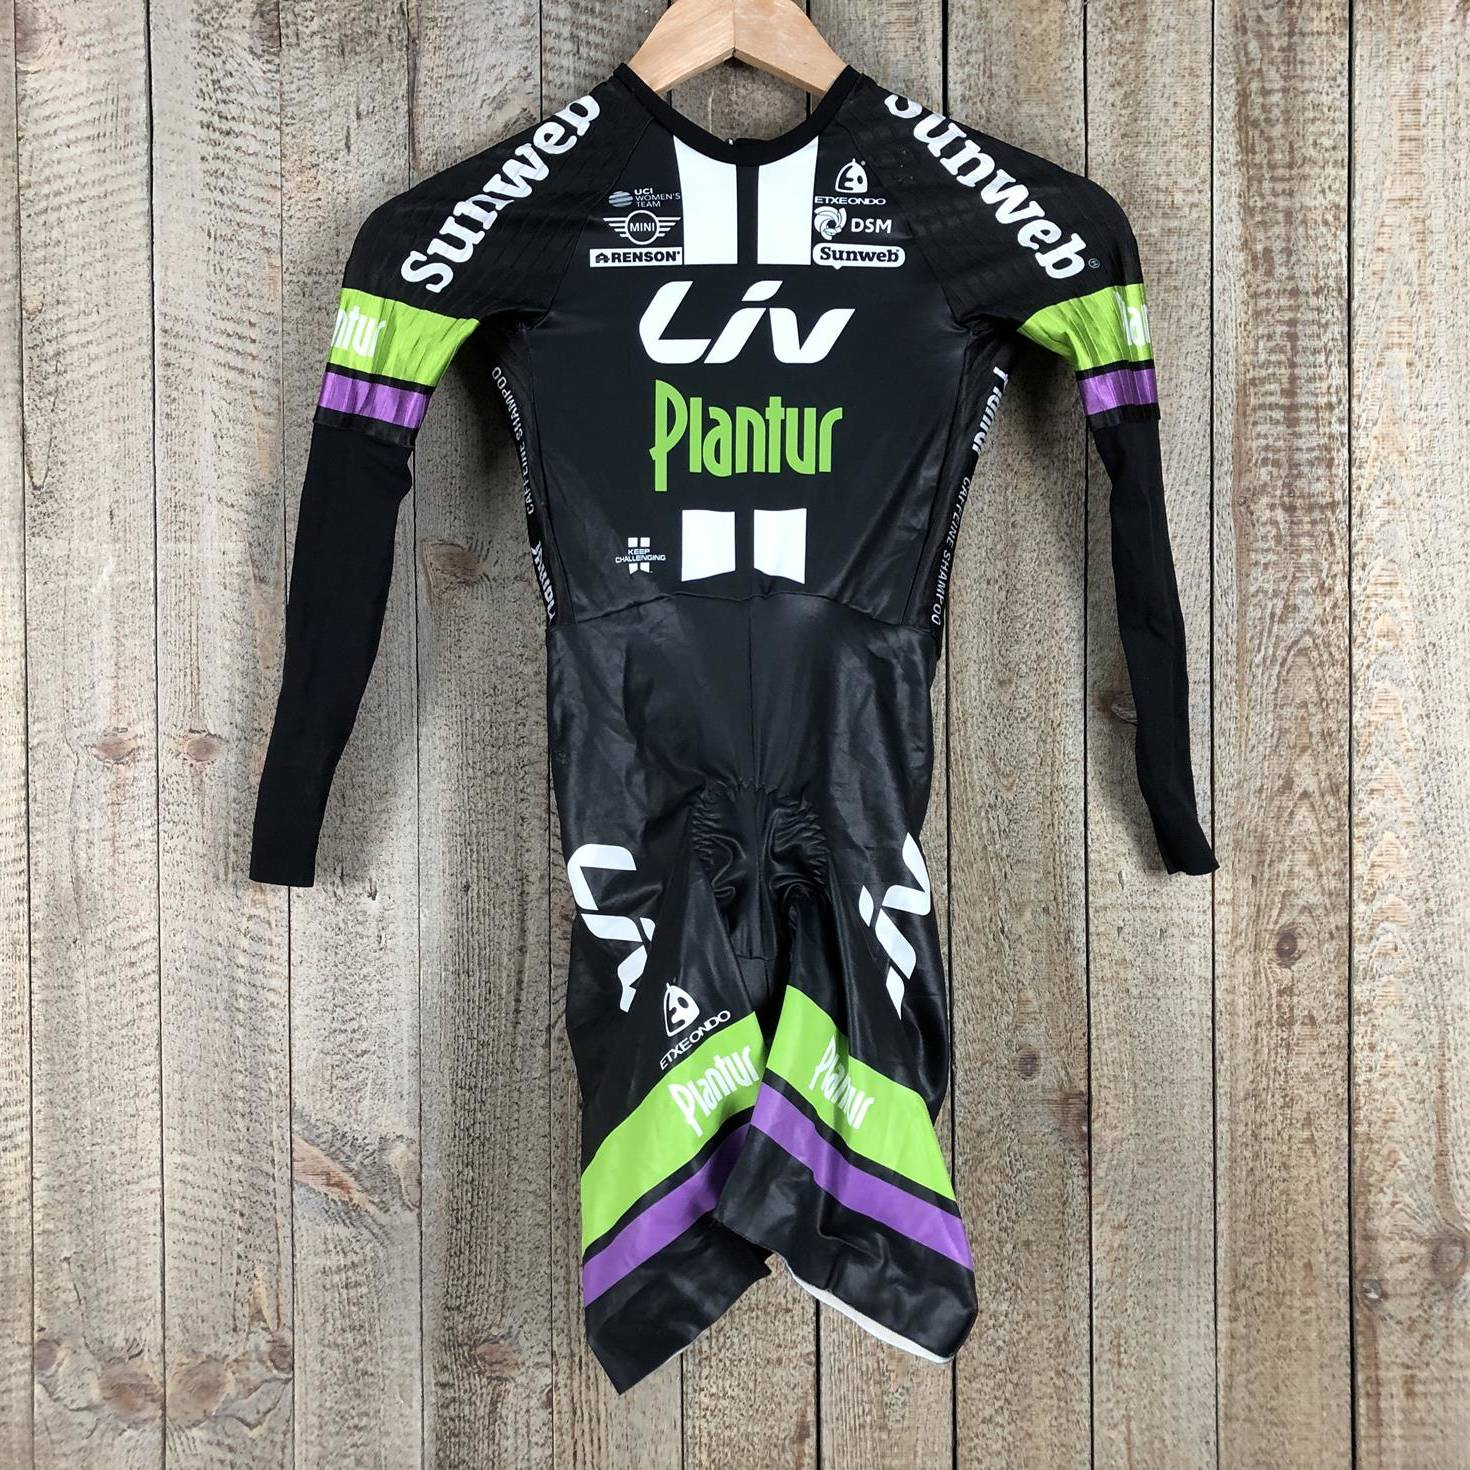 Long Sleeve Speedsuit - Liv Plantur 00002920 (1)